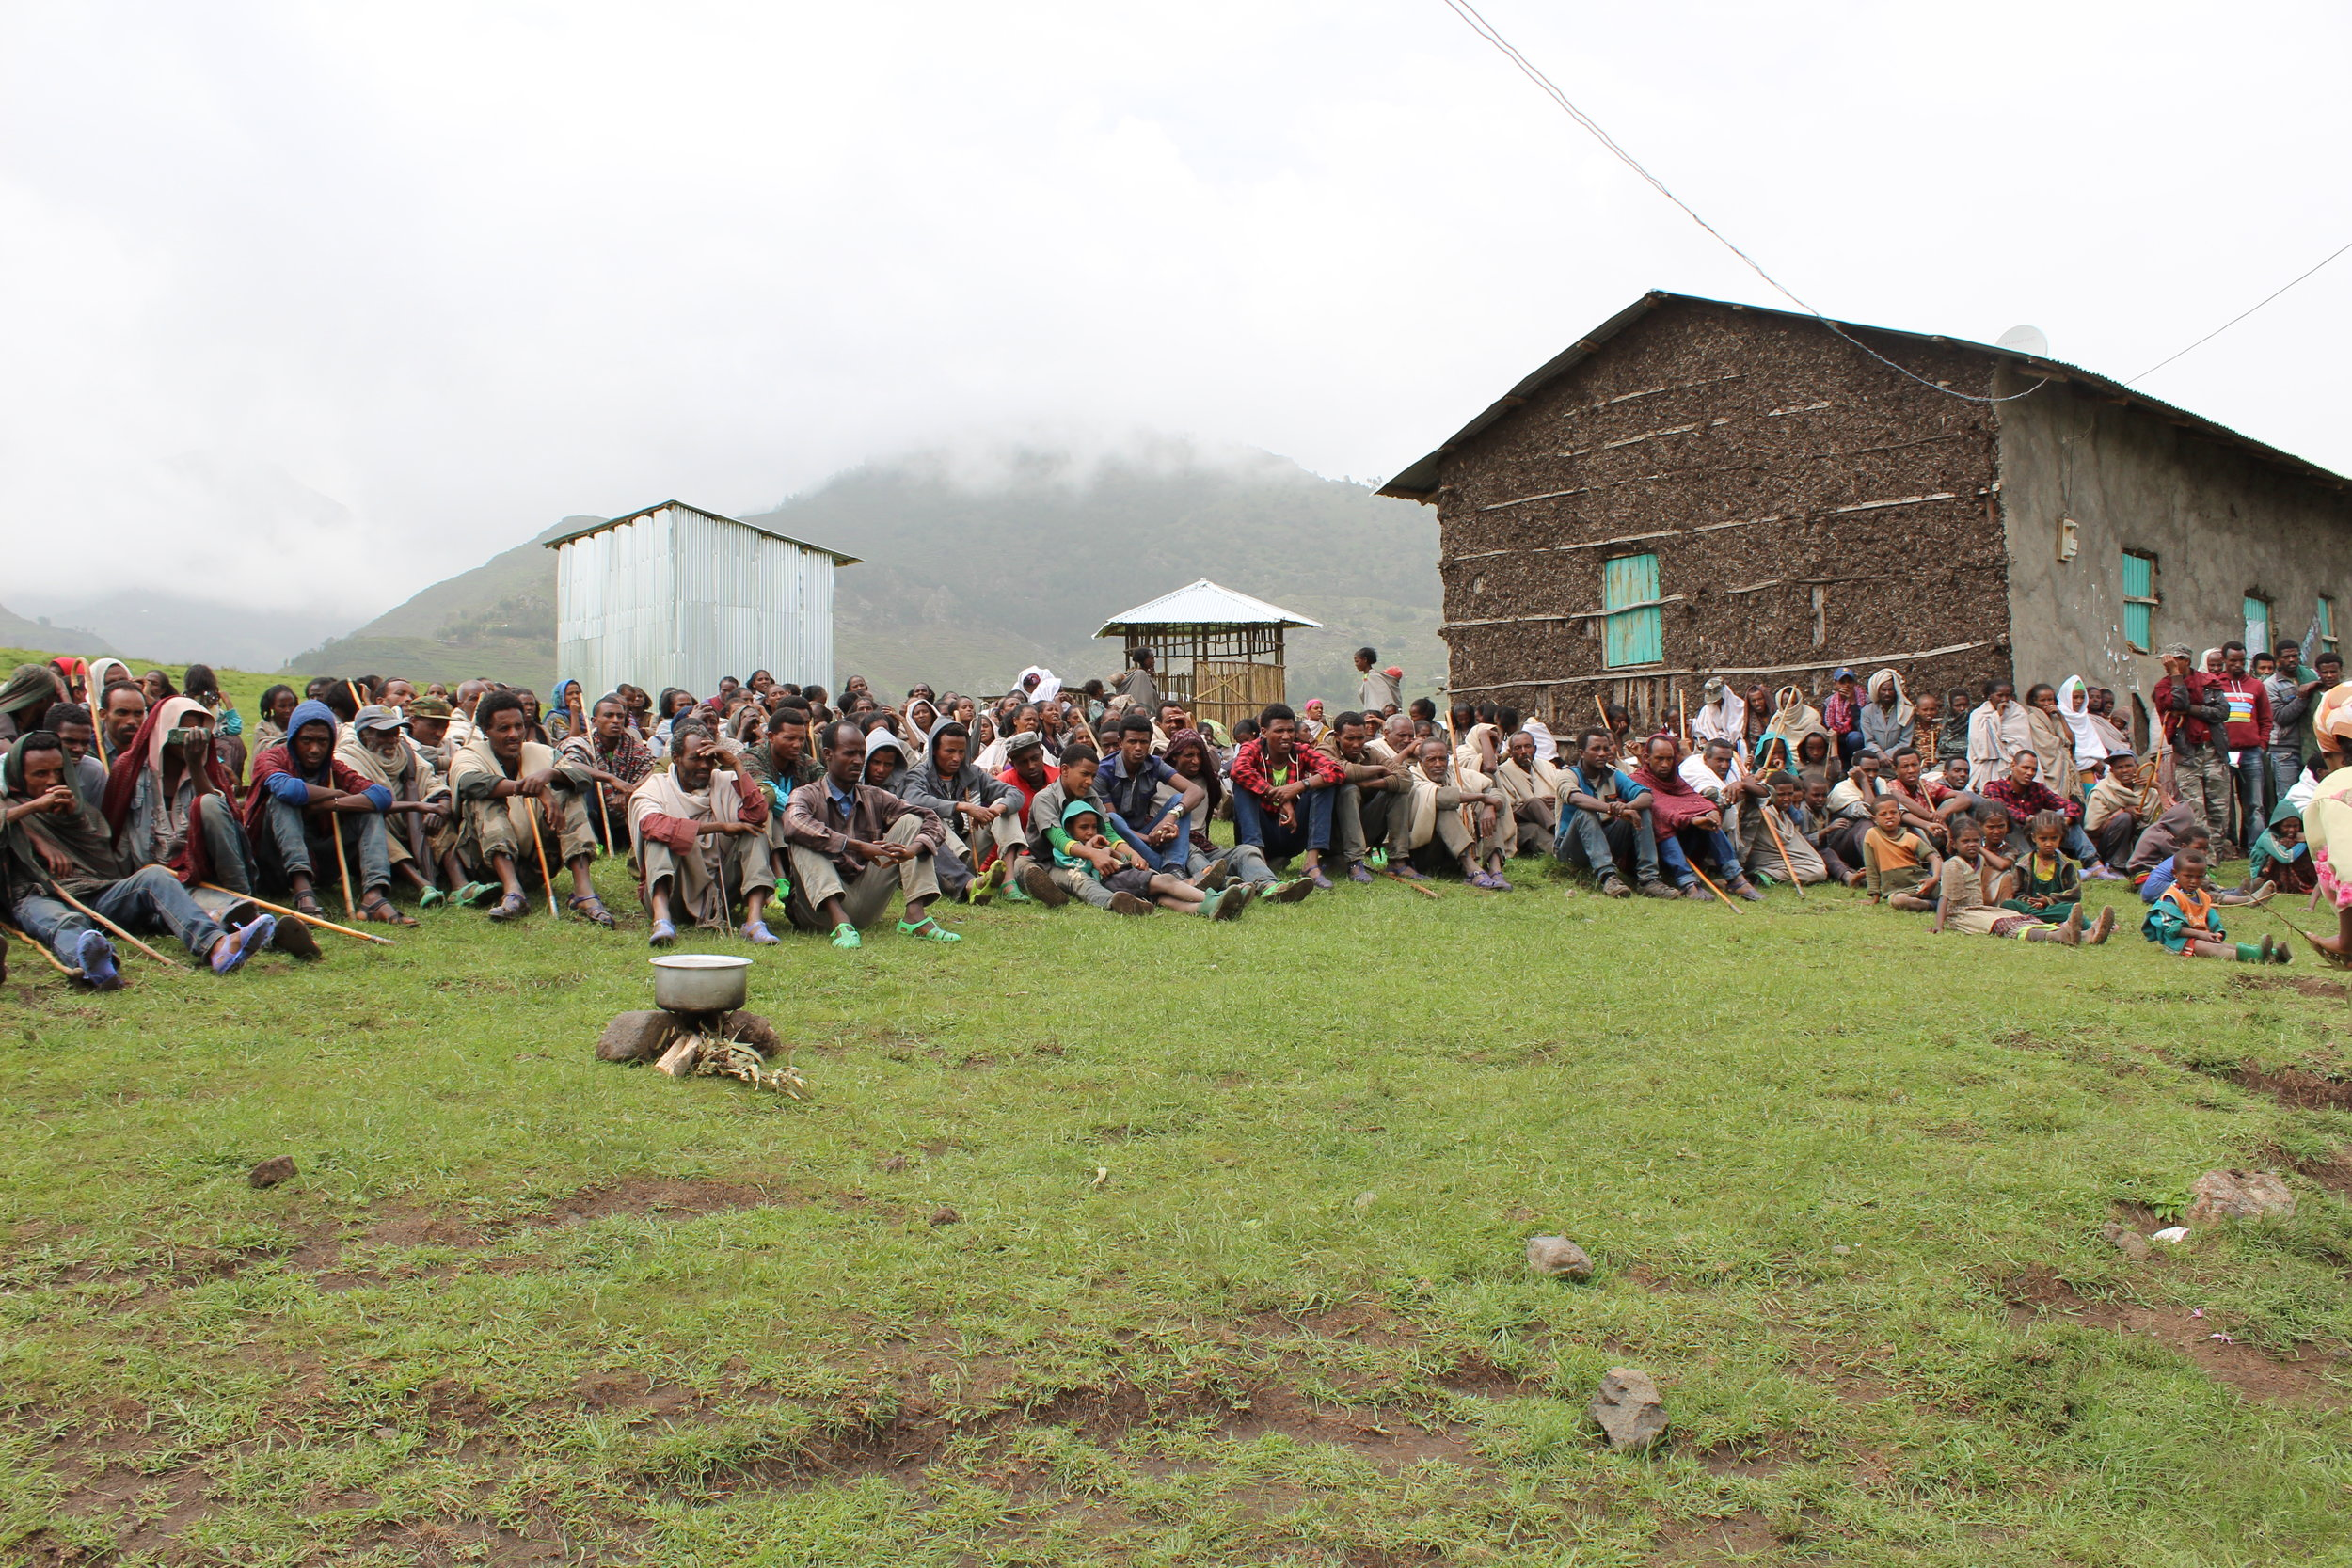 People gathered for a stove demonstration in the mountains of Northern Ethiopia. You can see the three-stone fire, which is the traditional way of cooking in many developing countries.